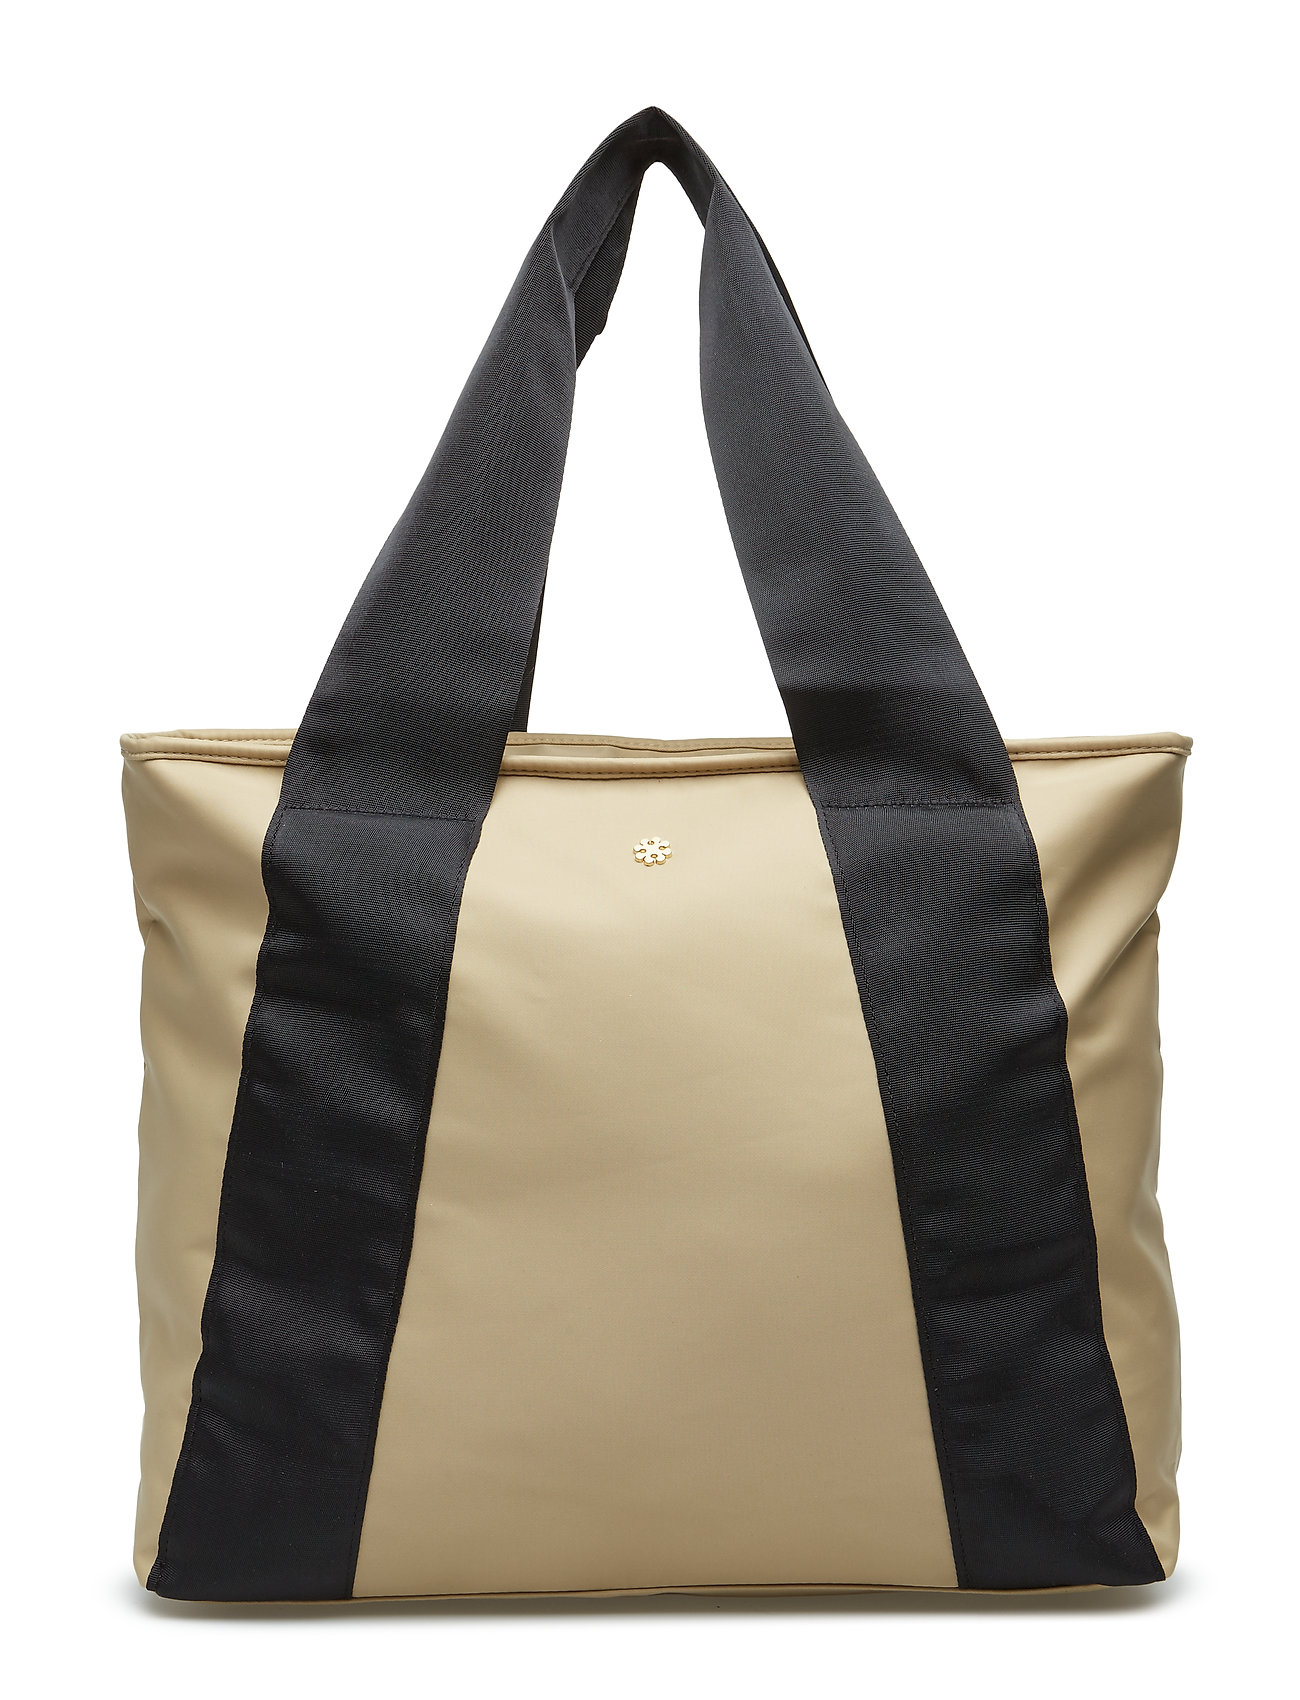 Image of Day Band Bag Shopper Taske Beige DAY ET (3102801431)